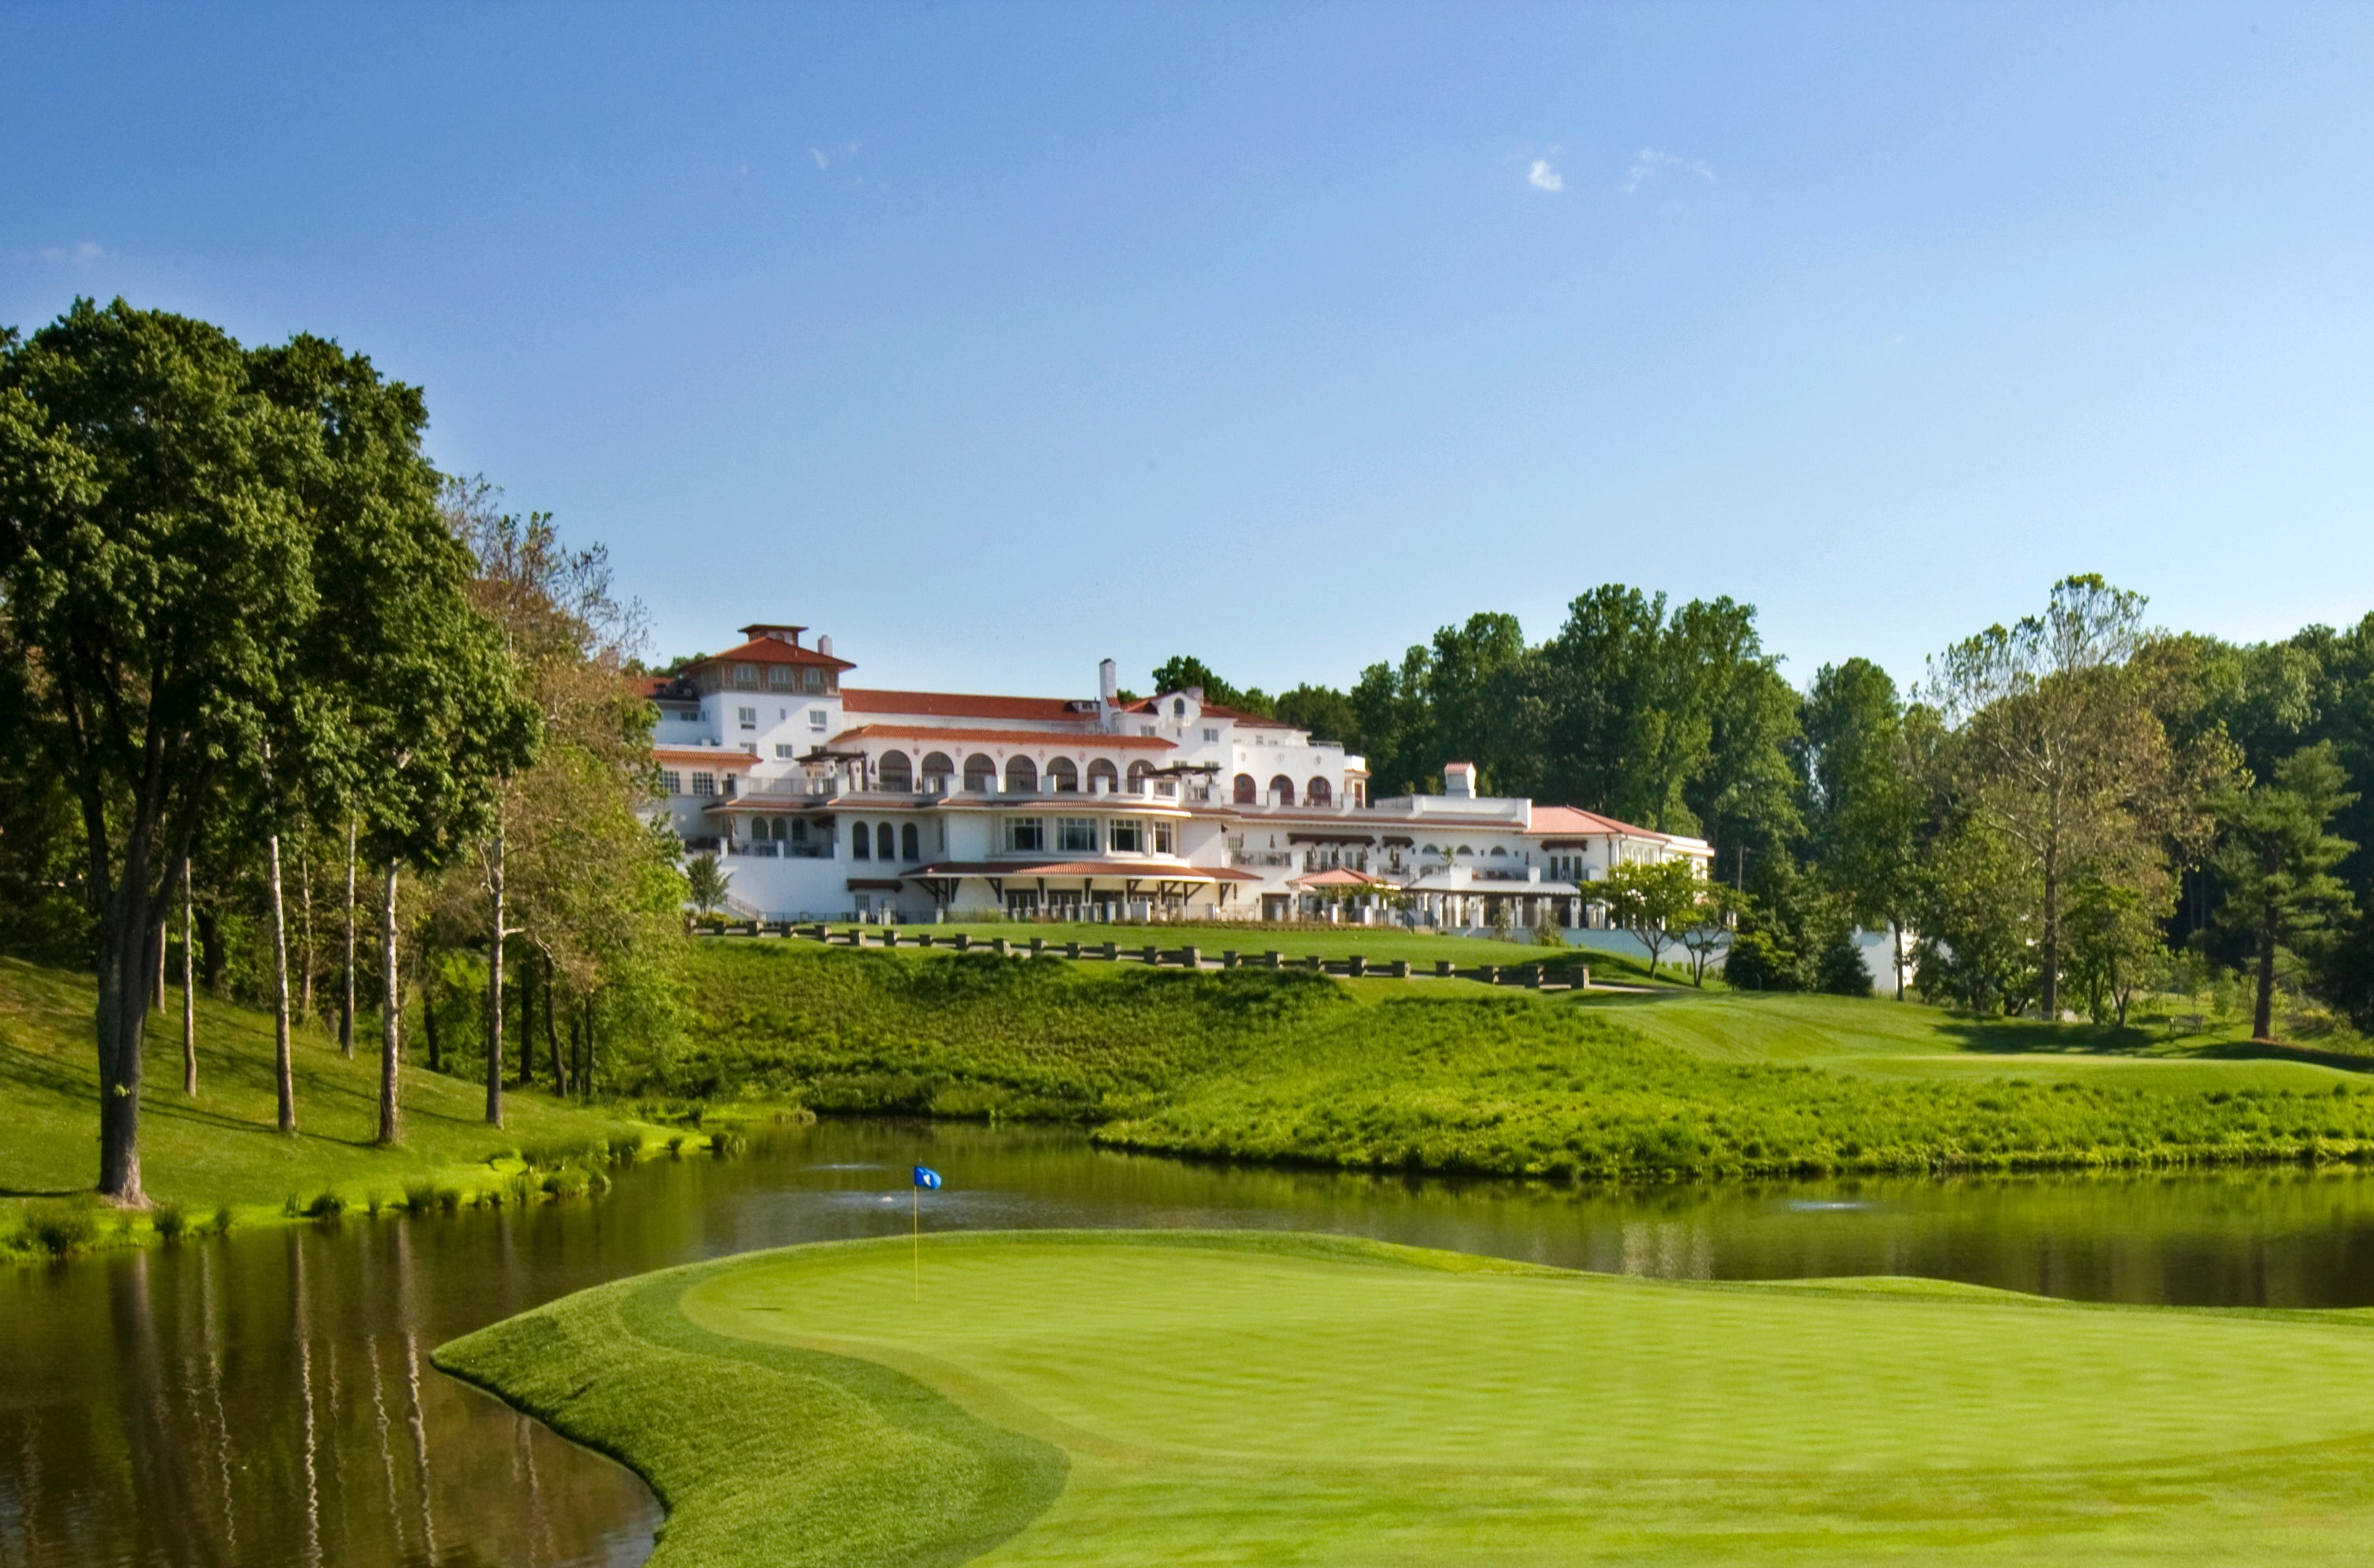 Congressional Country Club is located in the heart of Bethesda, Md. It is home to many of some of Washington DC's elite —and has the regal clubhouse to match.